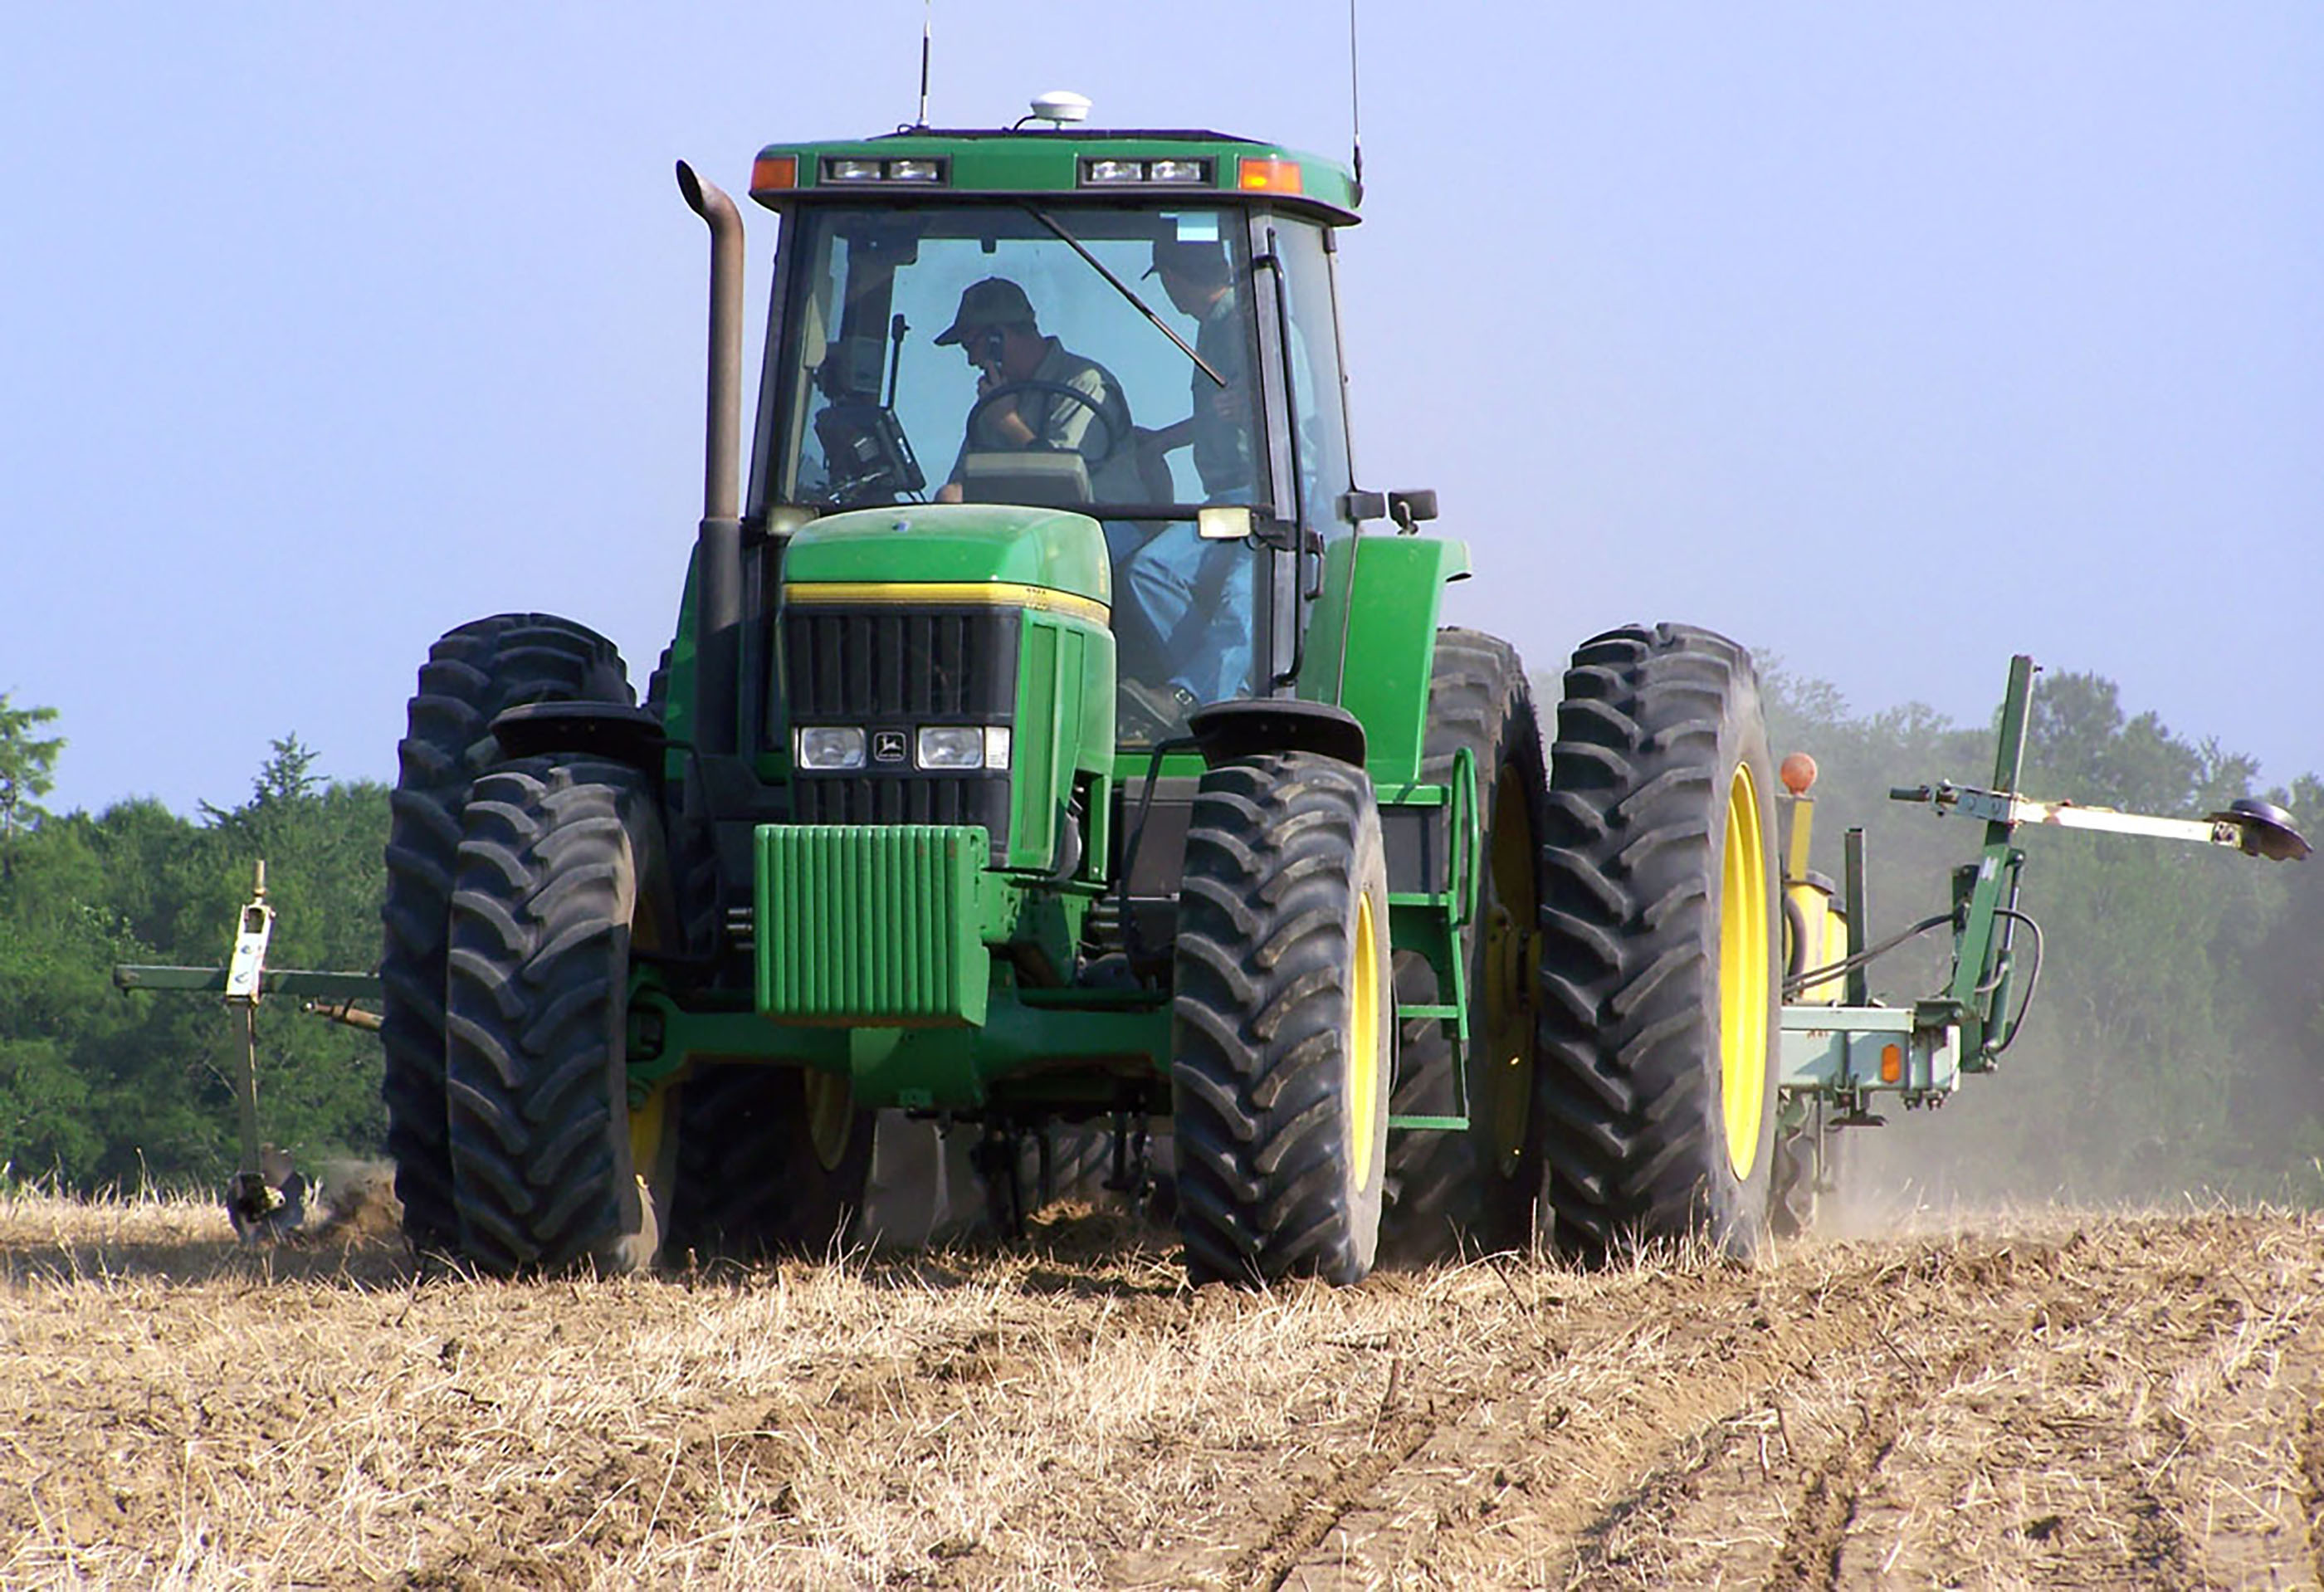 UGA's Farm Again program will host a Tractors 101 workshop on April 26 in Tifton, Georgia.